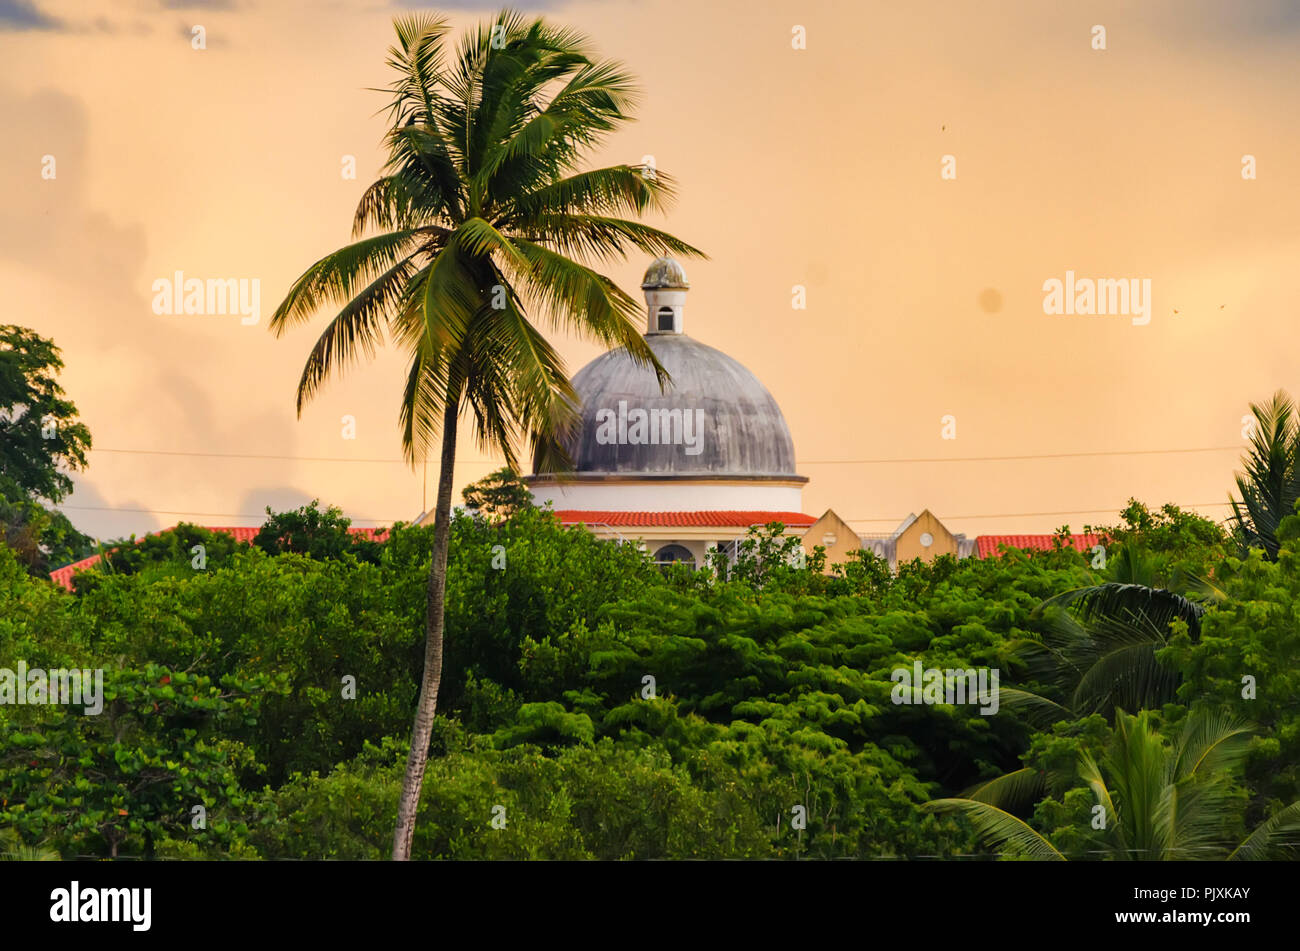 Sunset skyscape of Dominican republic with rooftop and plam trees - Stock Image